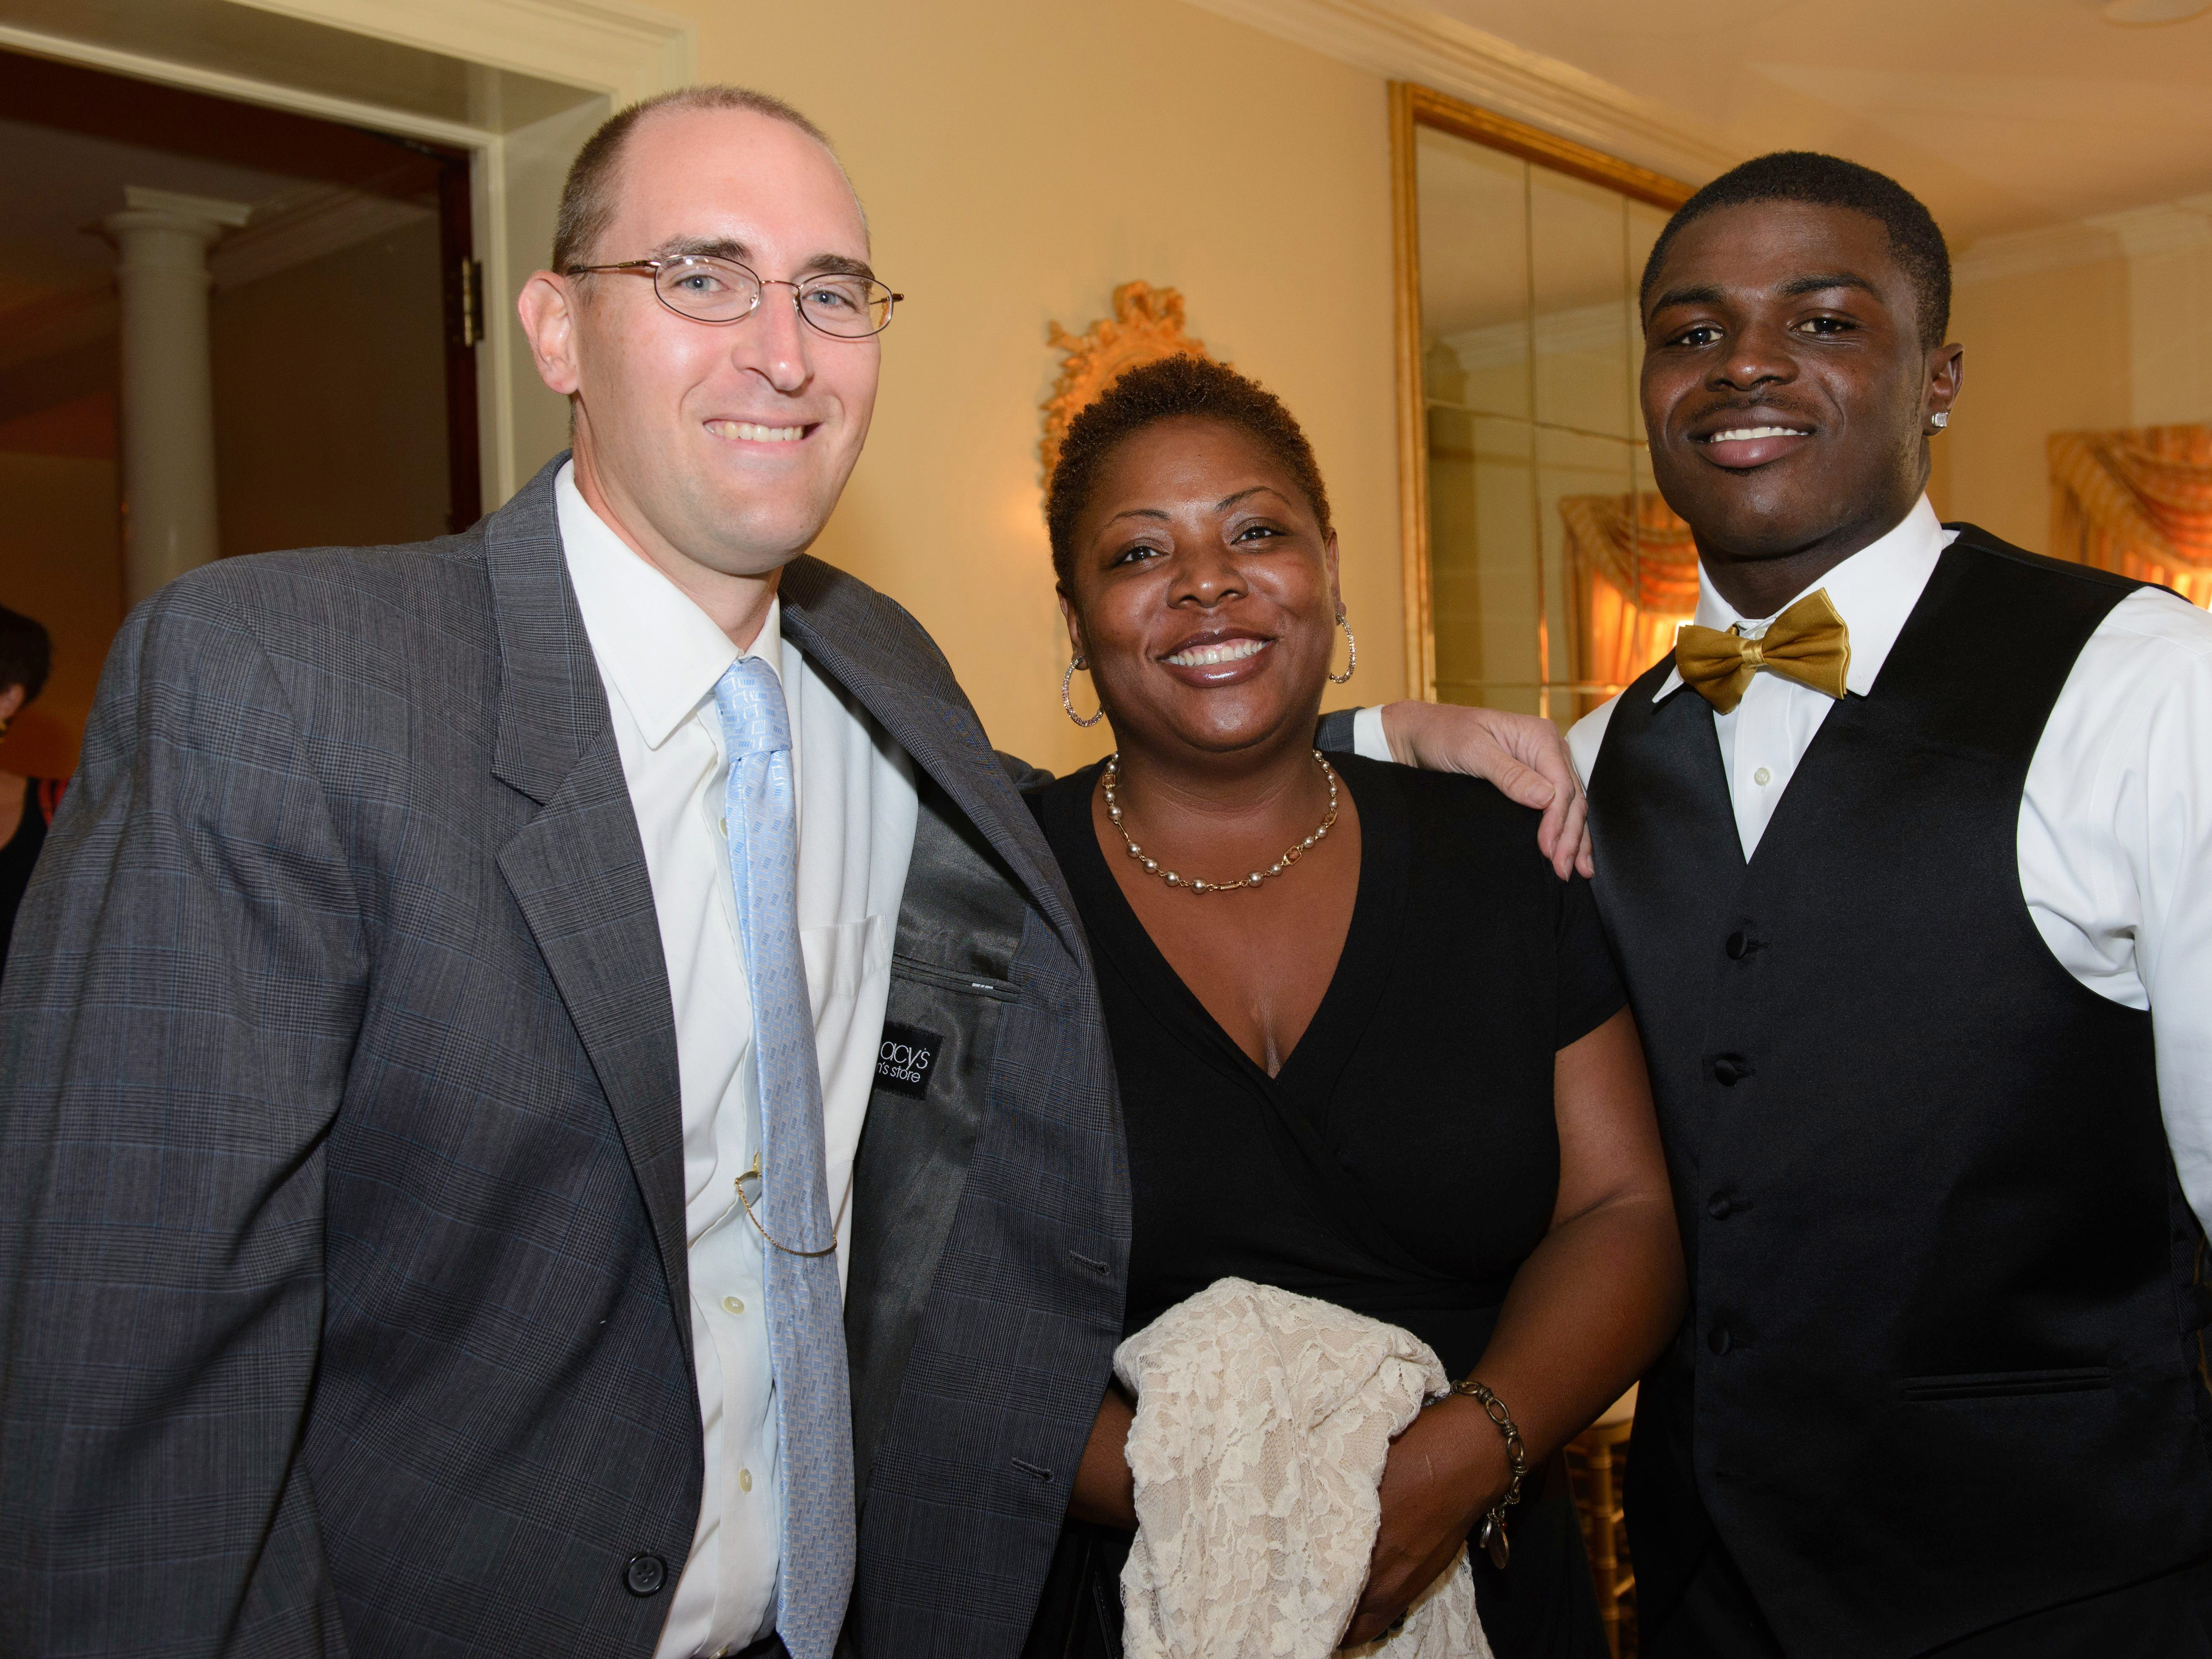 The Record Athlete Of The Week Recognition Banquet held at Stony Hill Inn. Darren Cooper, The Record; Ivory Bryand; Jabrill Peppers, Paramus Catholic.